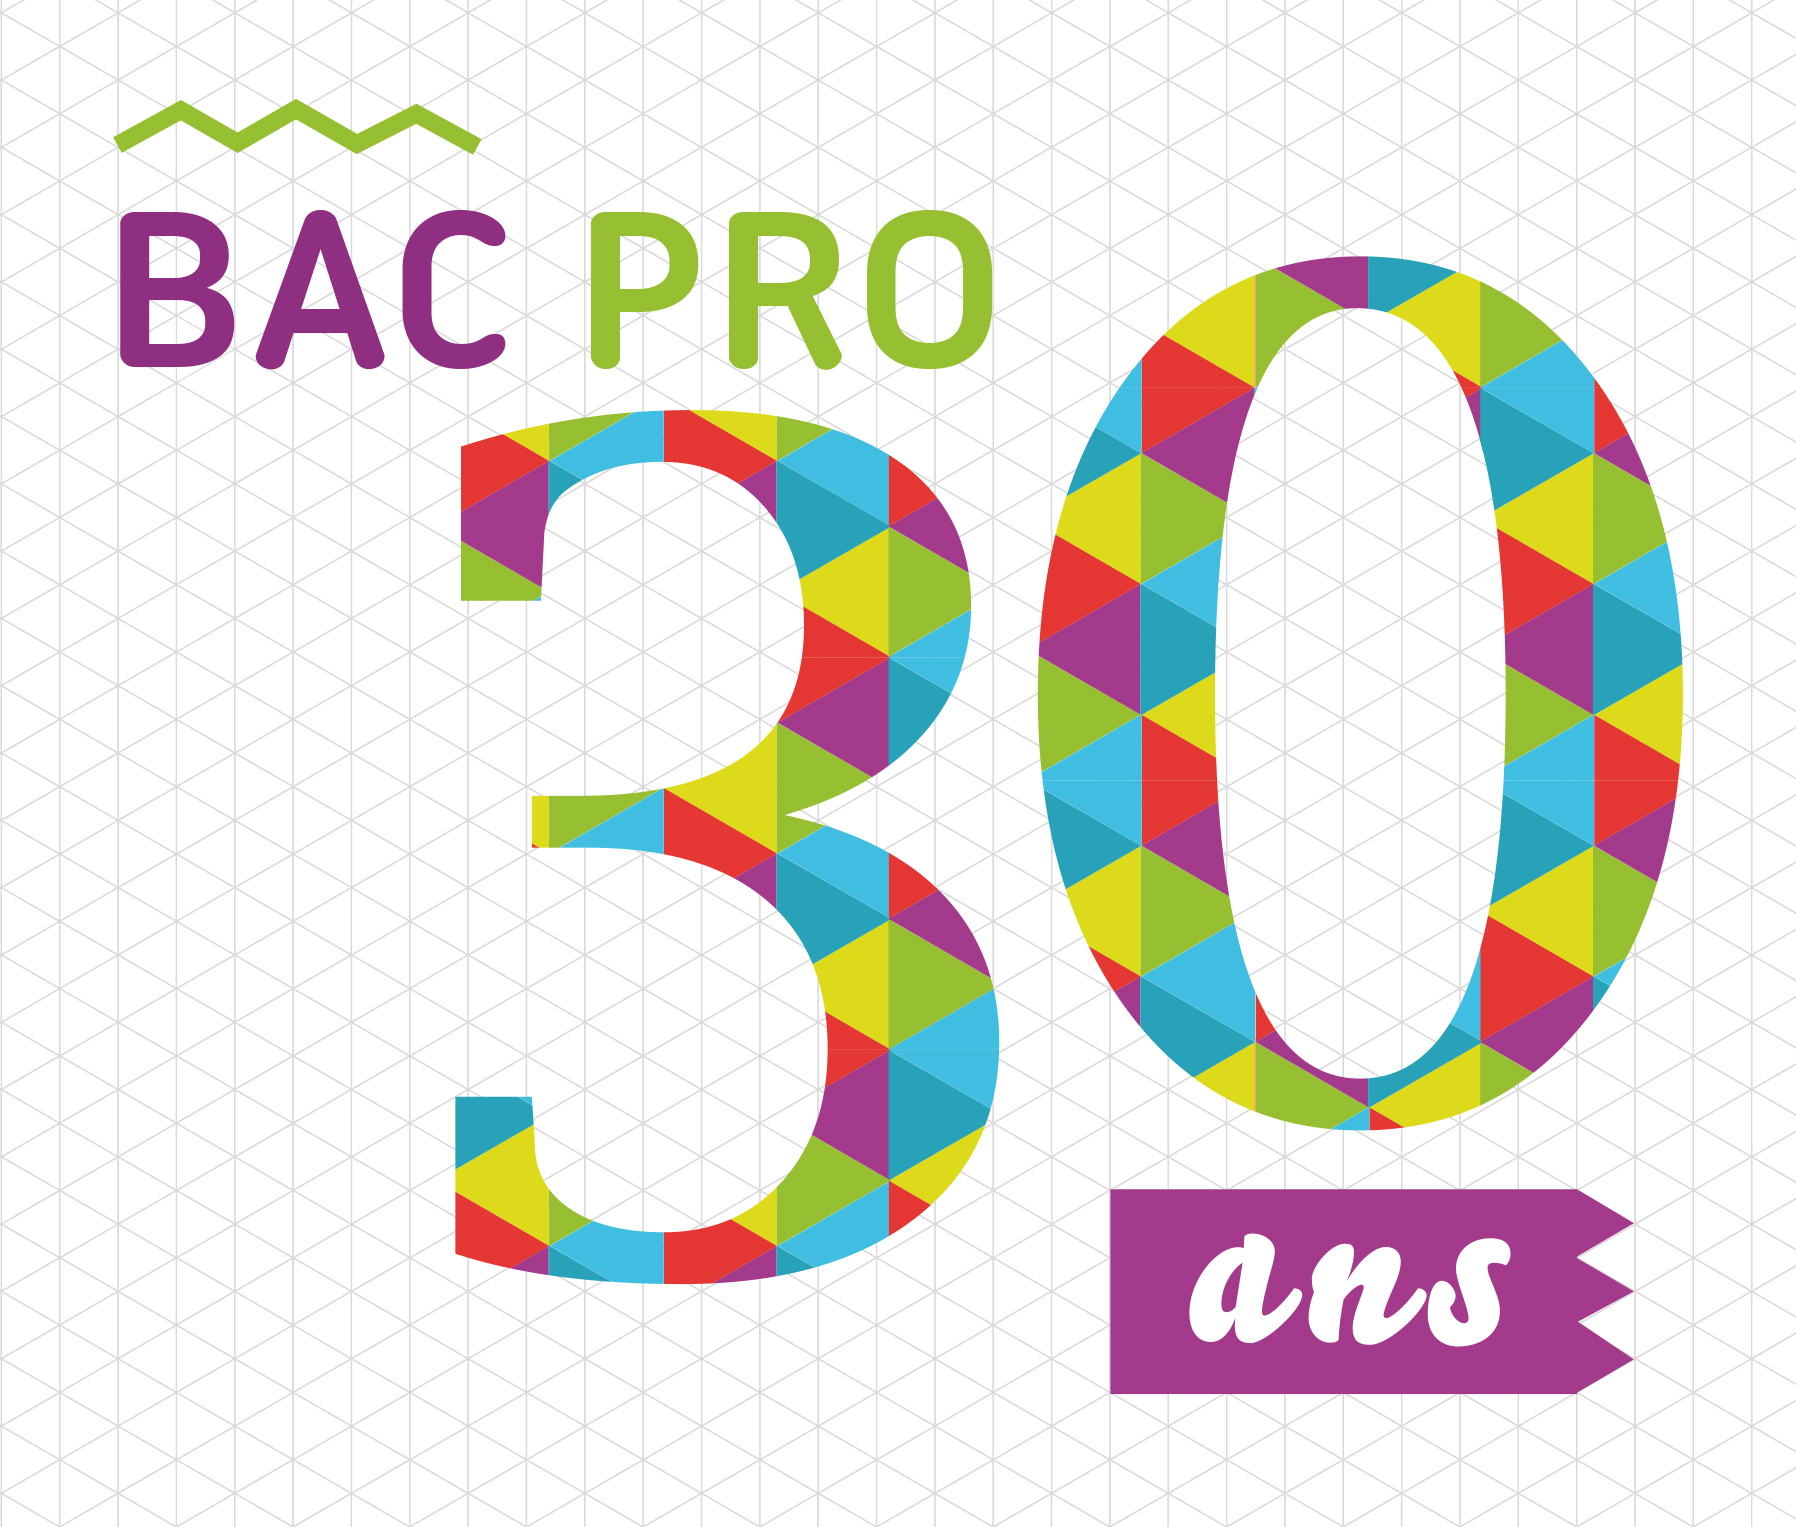 http://cache.media.education.gouv.fr/image/30_ans_bac_pro/59/0/VISUEL_30ANS_BACPRO_490590.jpg